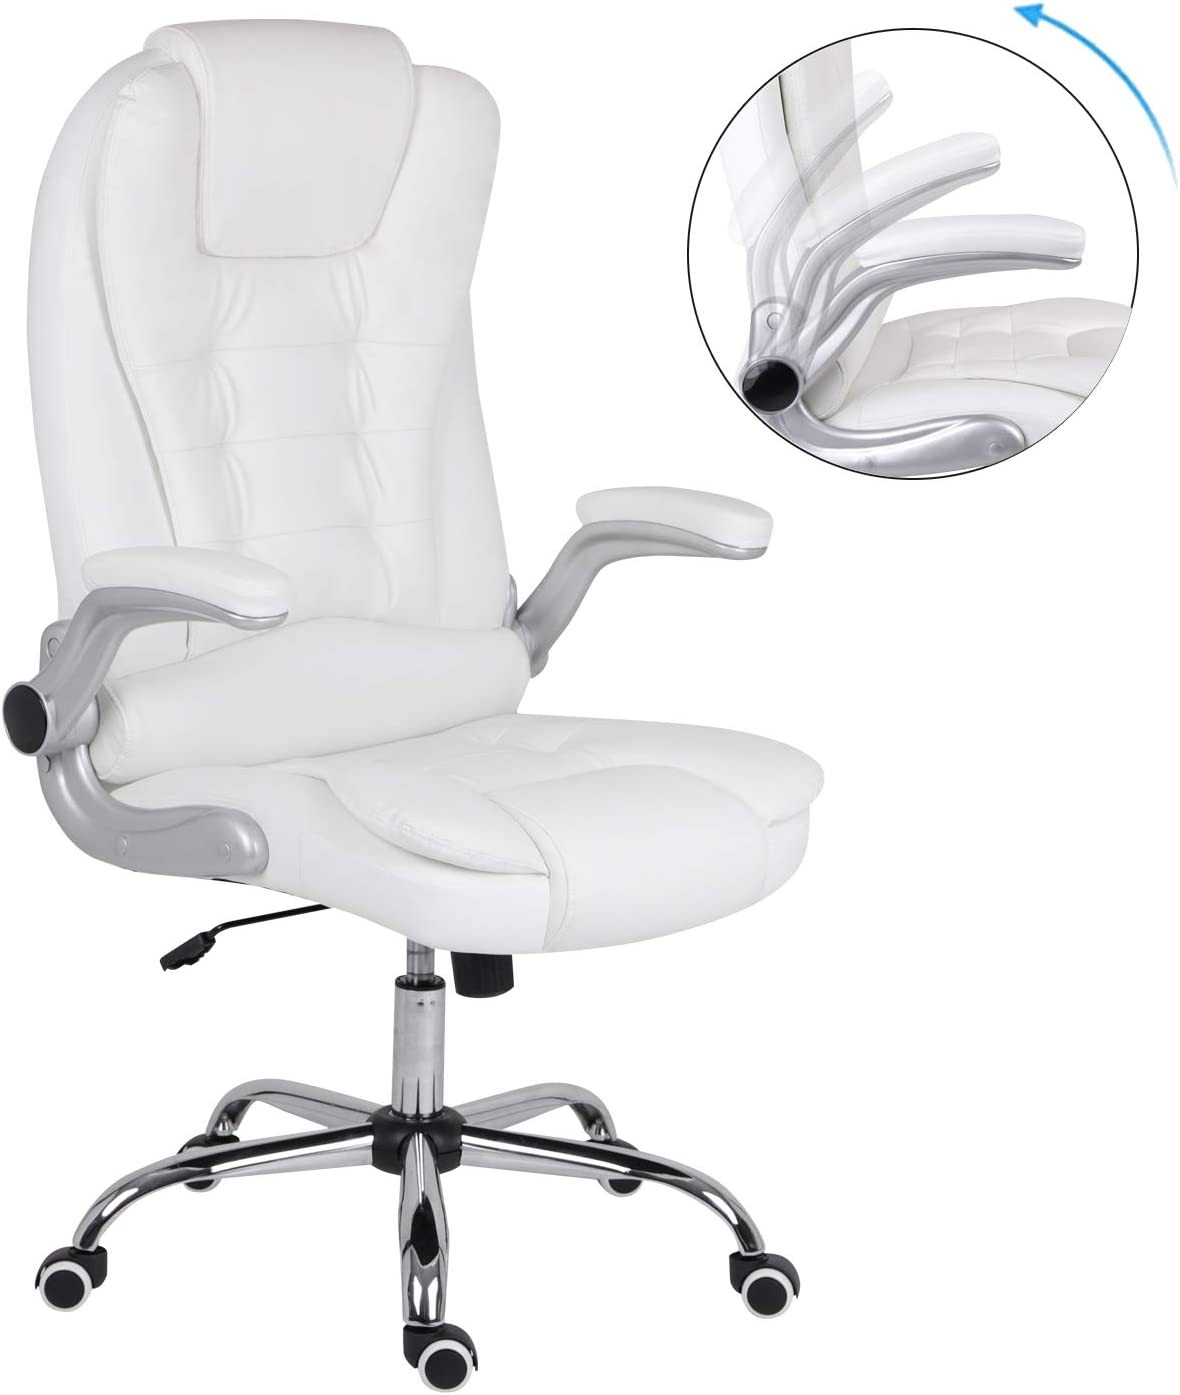 Euco Extra Padded Office Chair With Folding Armrets High Back Leather Computer Chair Adjustable Height Amazon De Kuche Haushalt